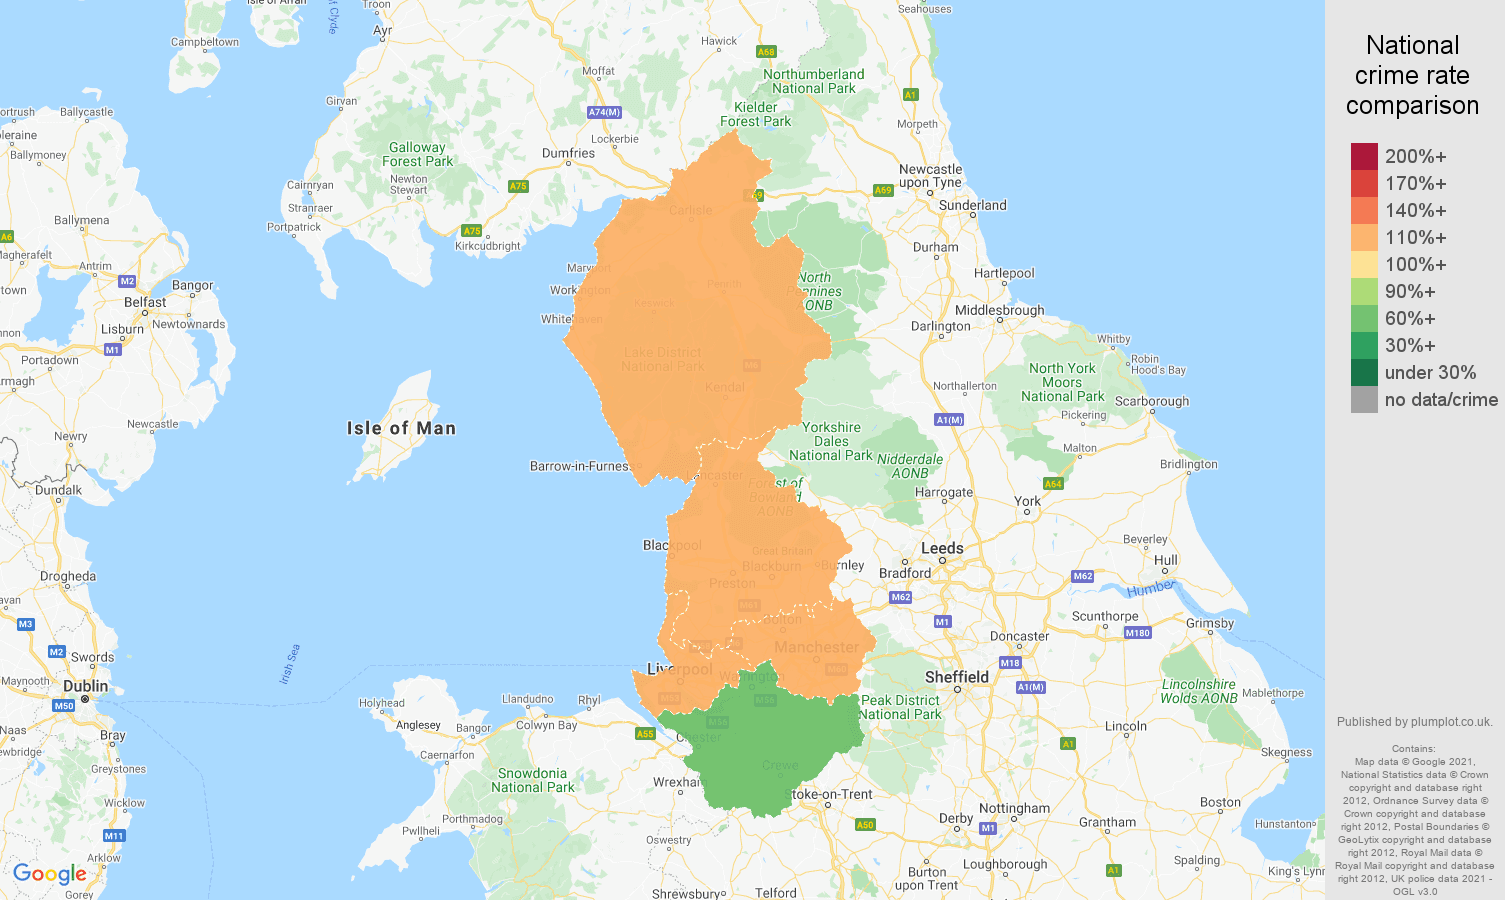 North West criminal damage and arson crime rate comparison map